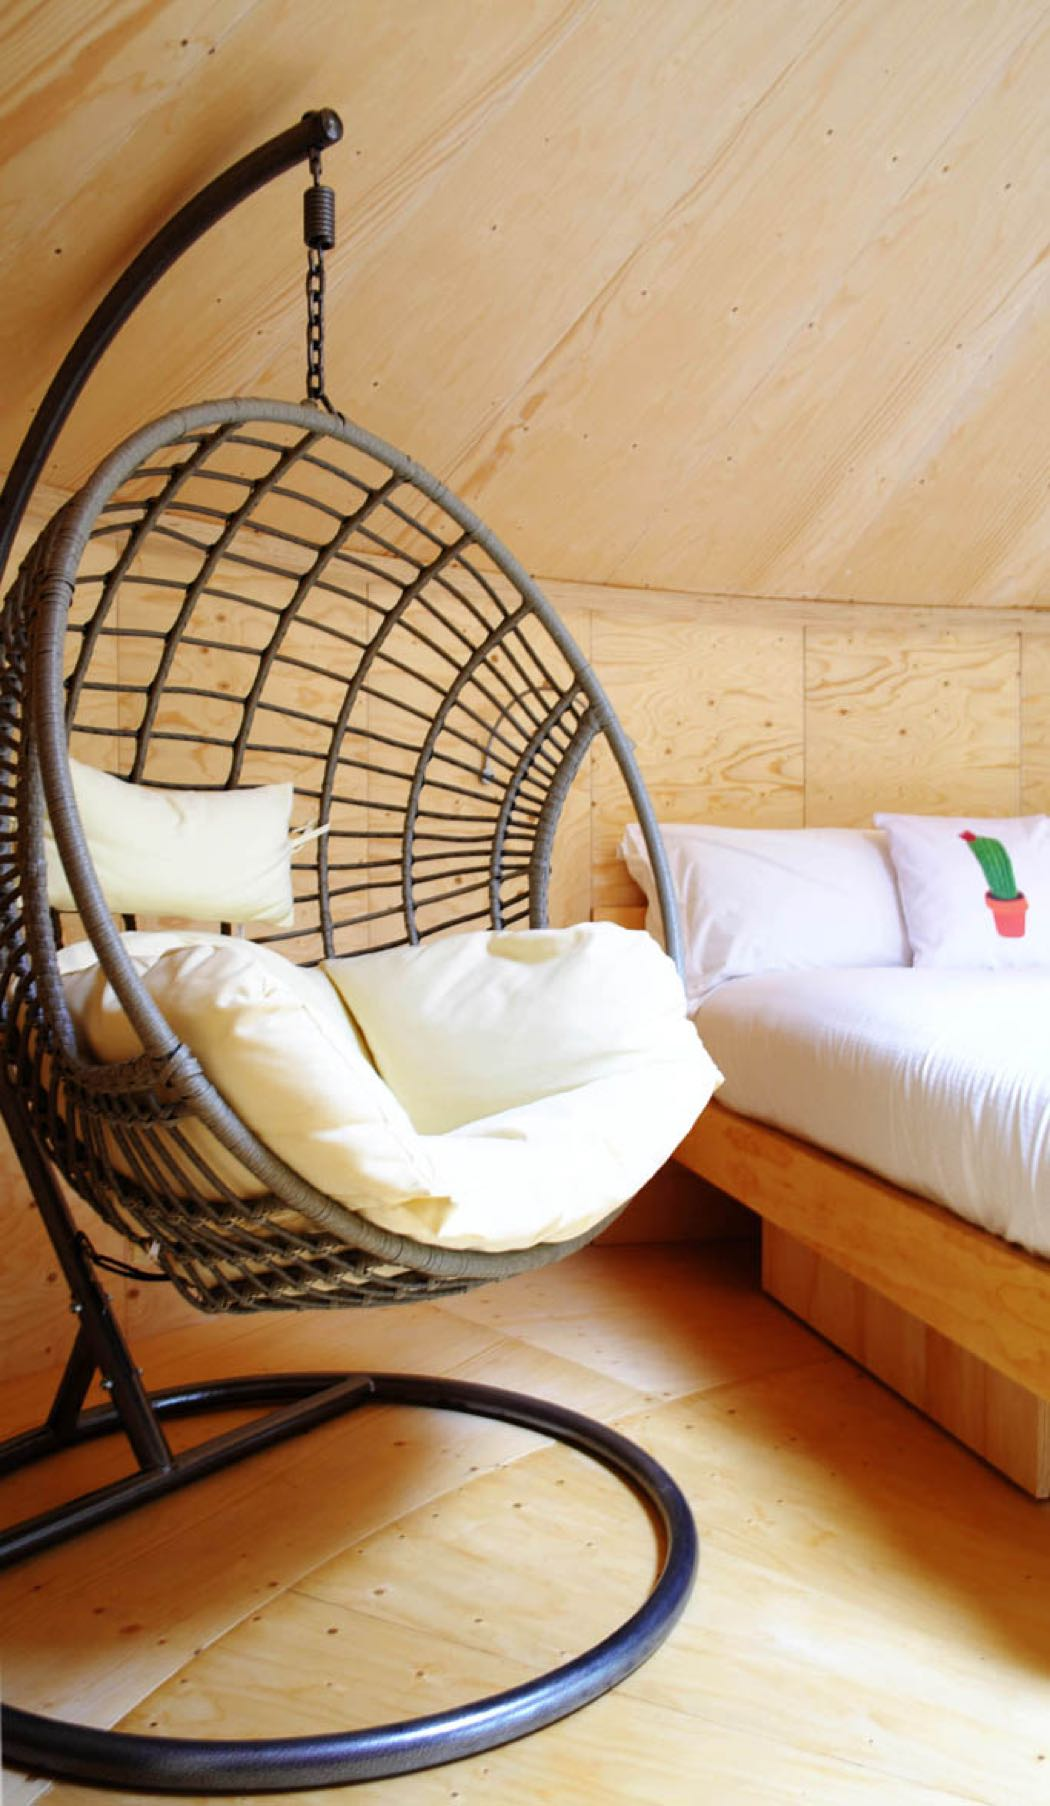 Win A Two Night Stay In A Luxury Ec(H)o Yurt Worth £450 (Ended)